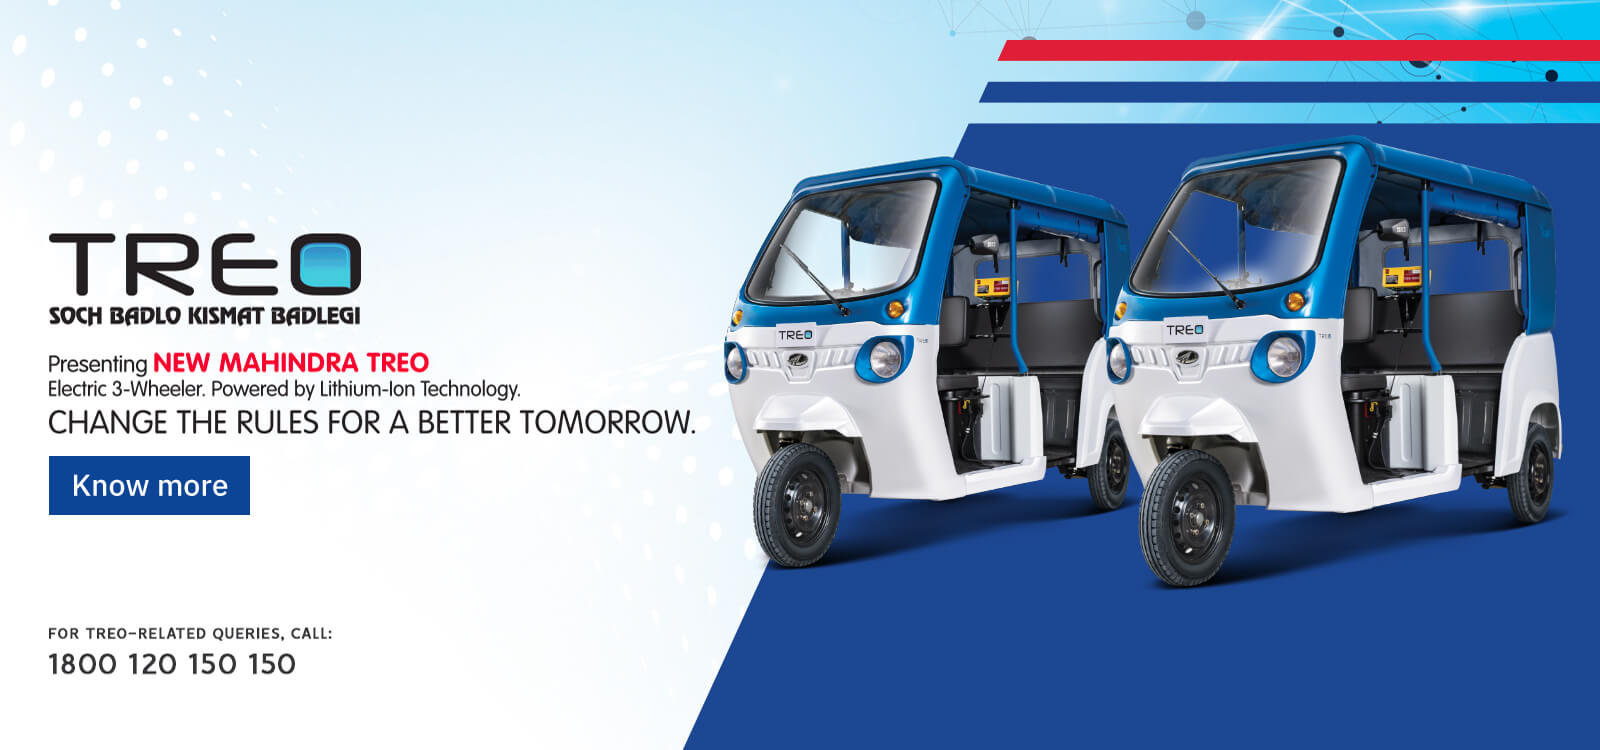 Presenting Mahindra Treo - The most advanced lithium-ion electric 3-wheeler range. Dedicated to rising India.